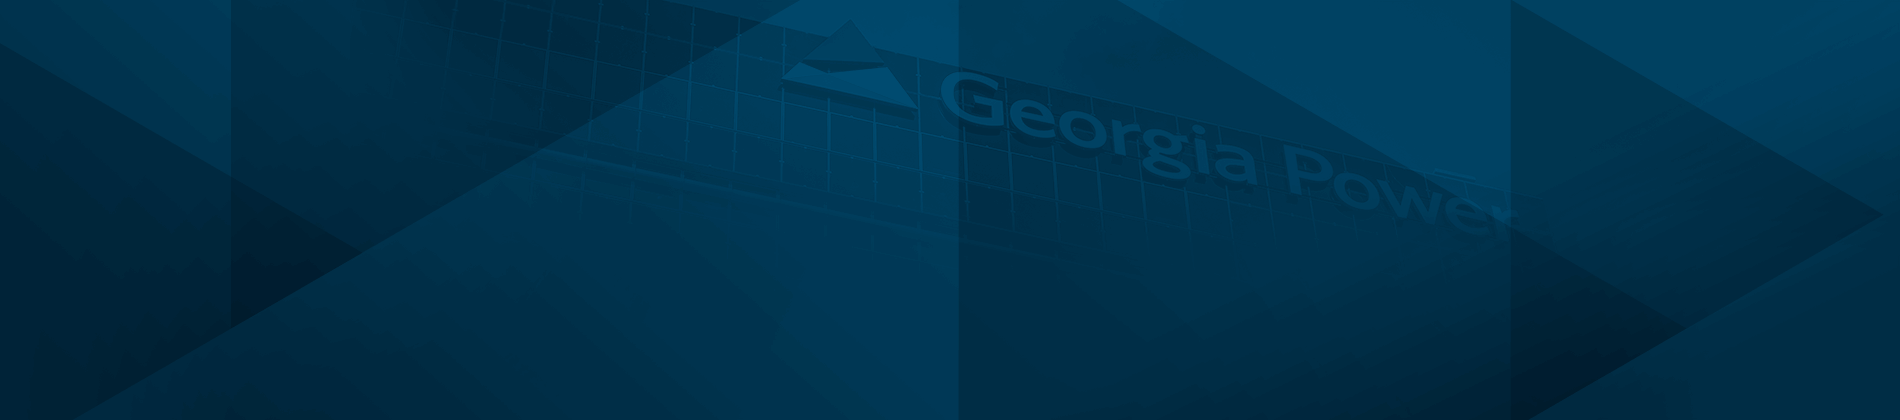 As the coronavirus continues to spread, Georgia Power wants to assure our customers that we have comprehensive plans in place to continue our operations.